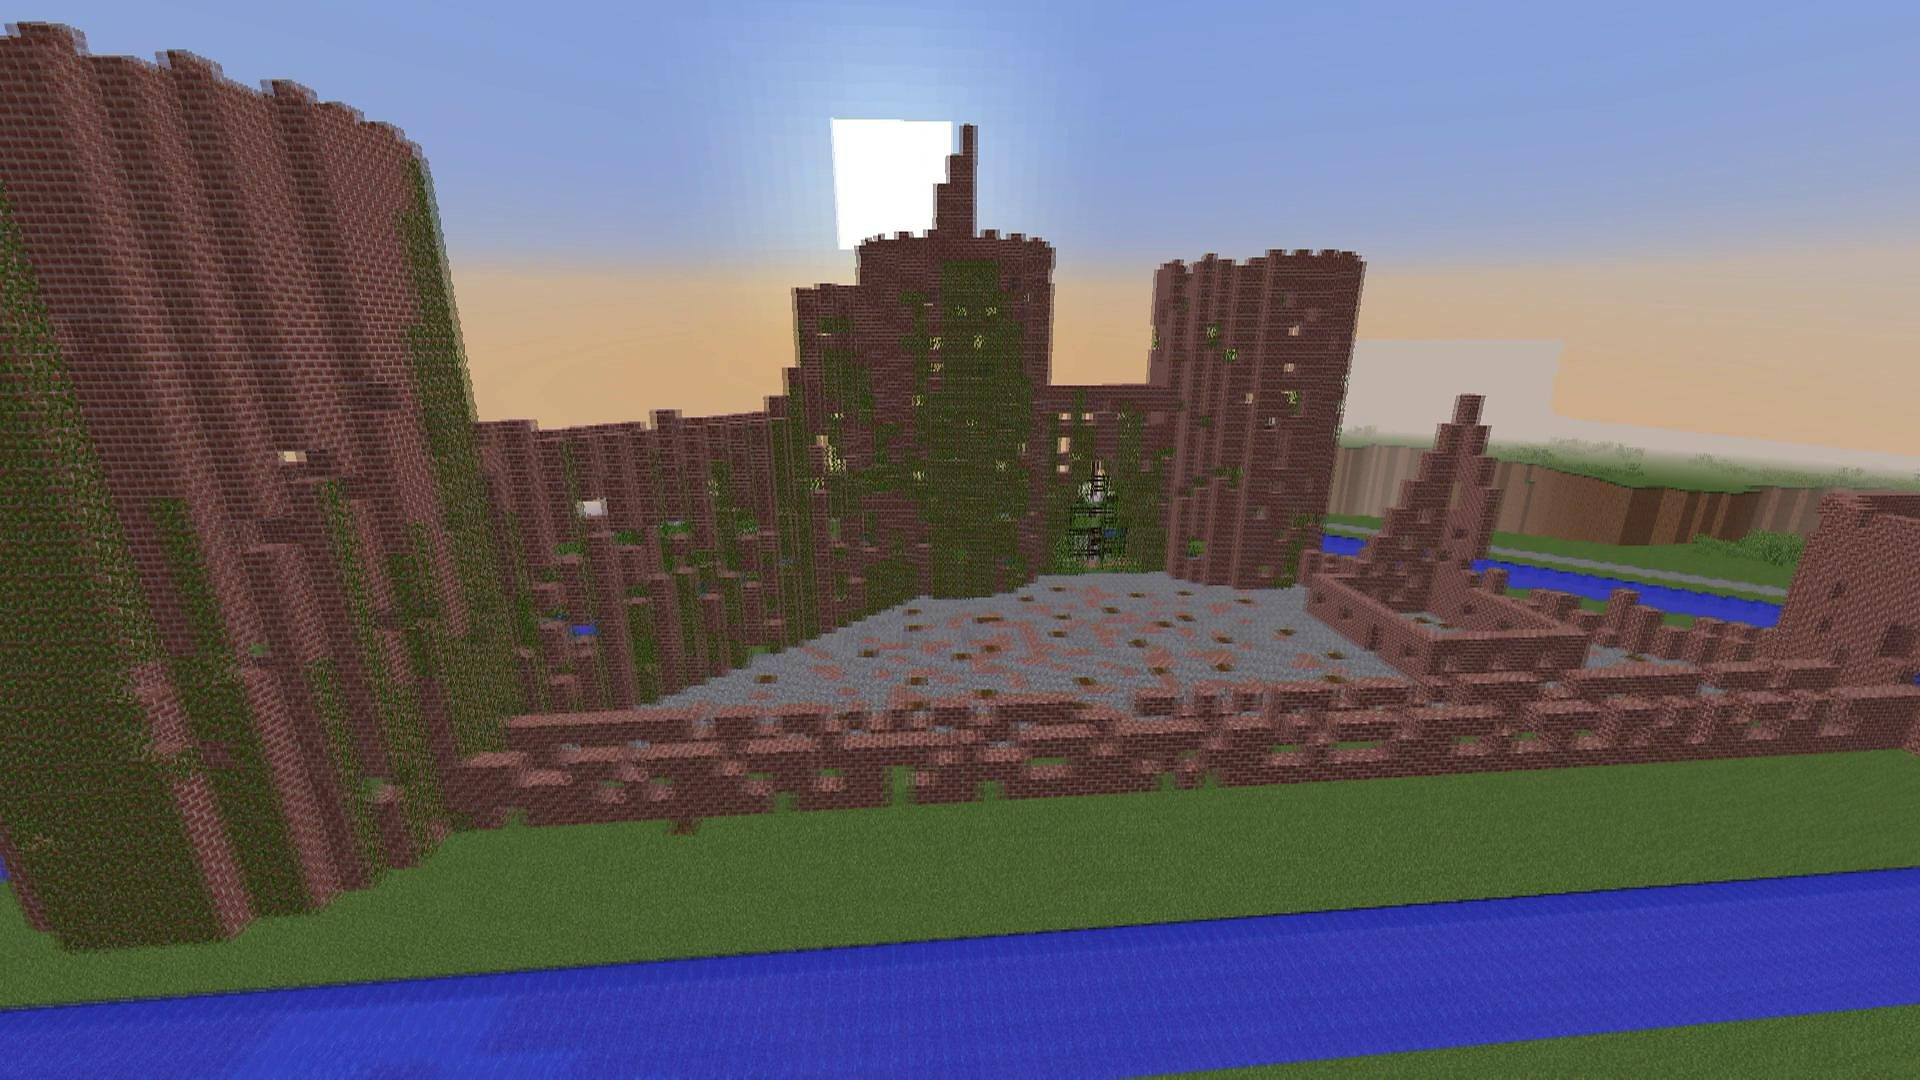 Bbc Make It Digital Build Scotland Clips Minecraft Repeating Circuit